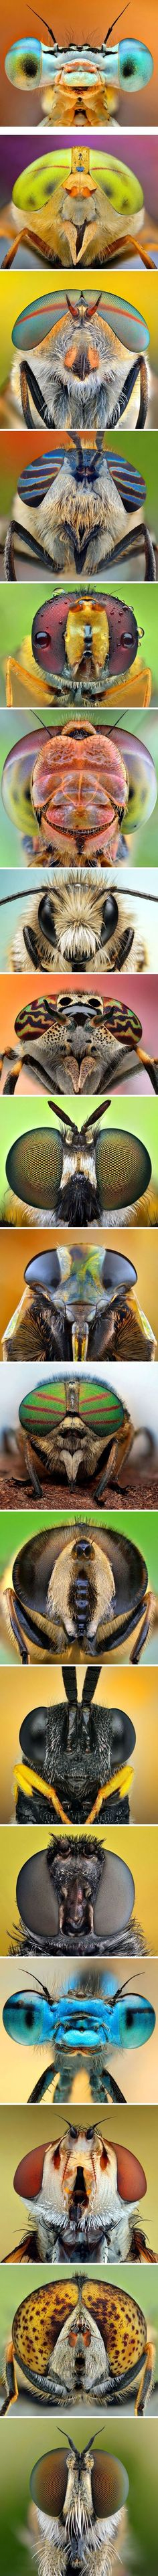 IPhotographer Ireneusz Irass Waledzik - collection of fascinating facet eyes of dragonflies, bees and flies. #Arts Design